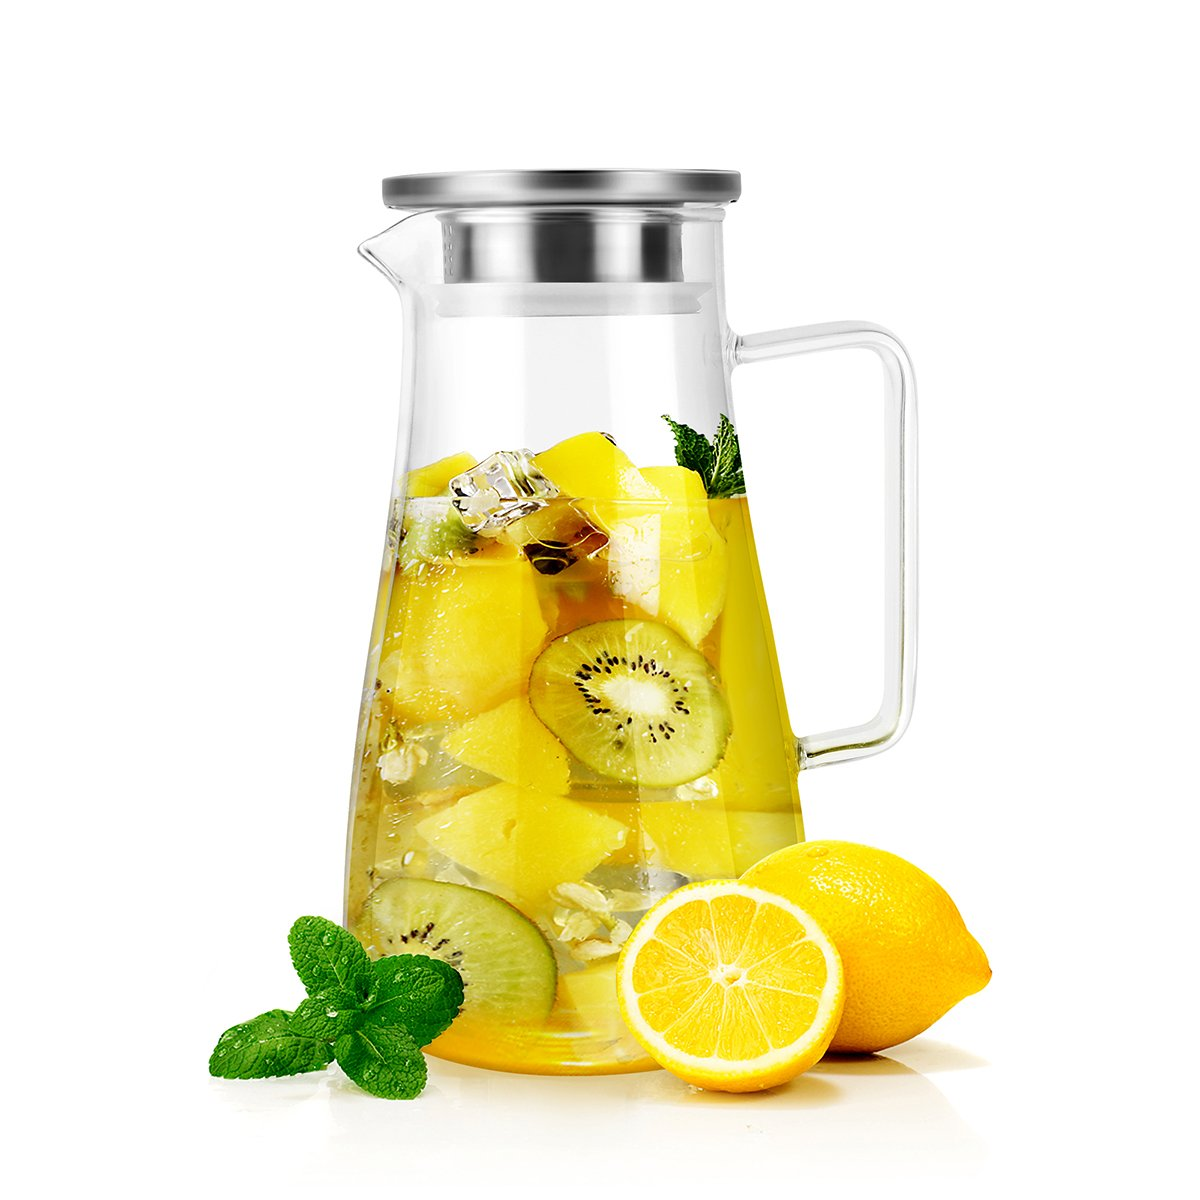 1500 ml Glass Pitcher with Stainless Steel Lid and Spout Water Carafe with Handle by RayPard, for Homemade Juice & Iced Tea